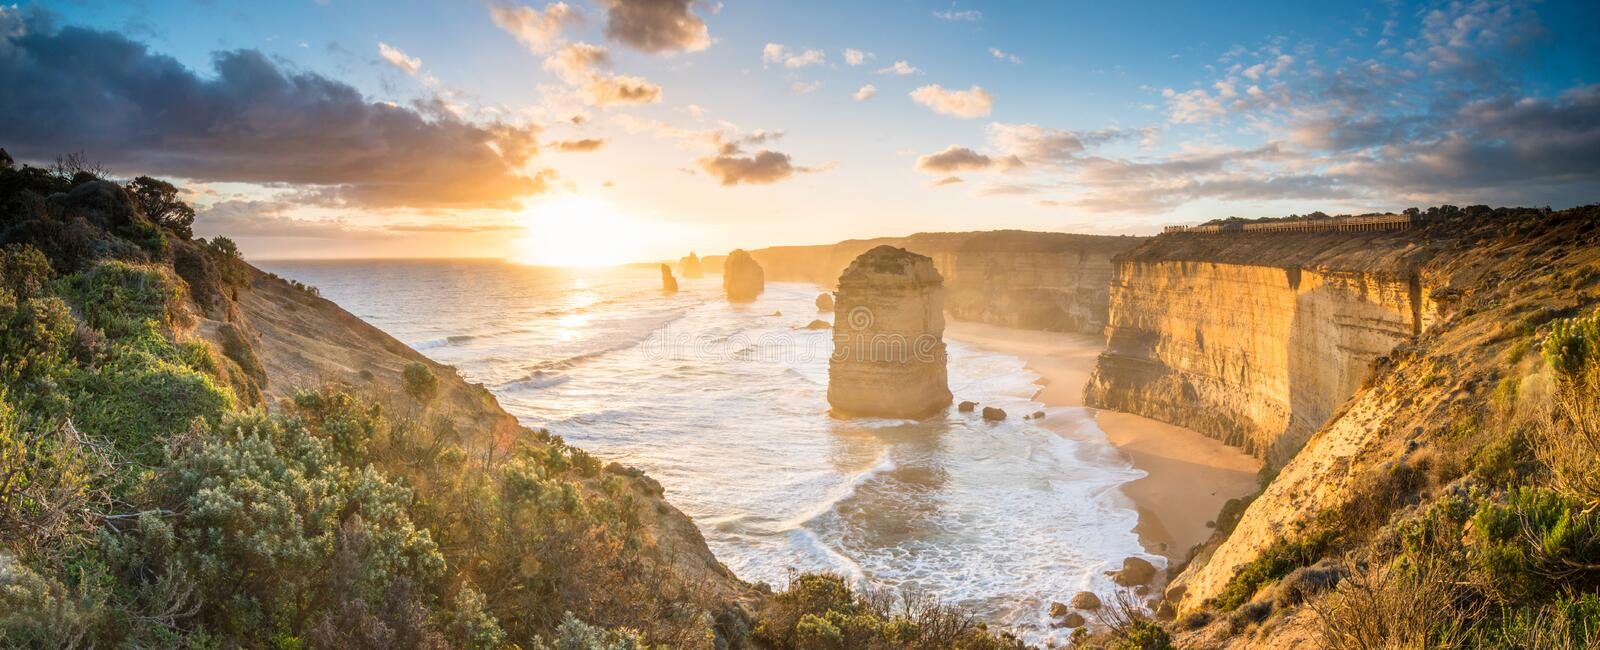 The Twelve Apostles an iconic landscape of the Great Ocean Road, Victoria state of Australia. royalty free stock image